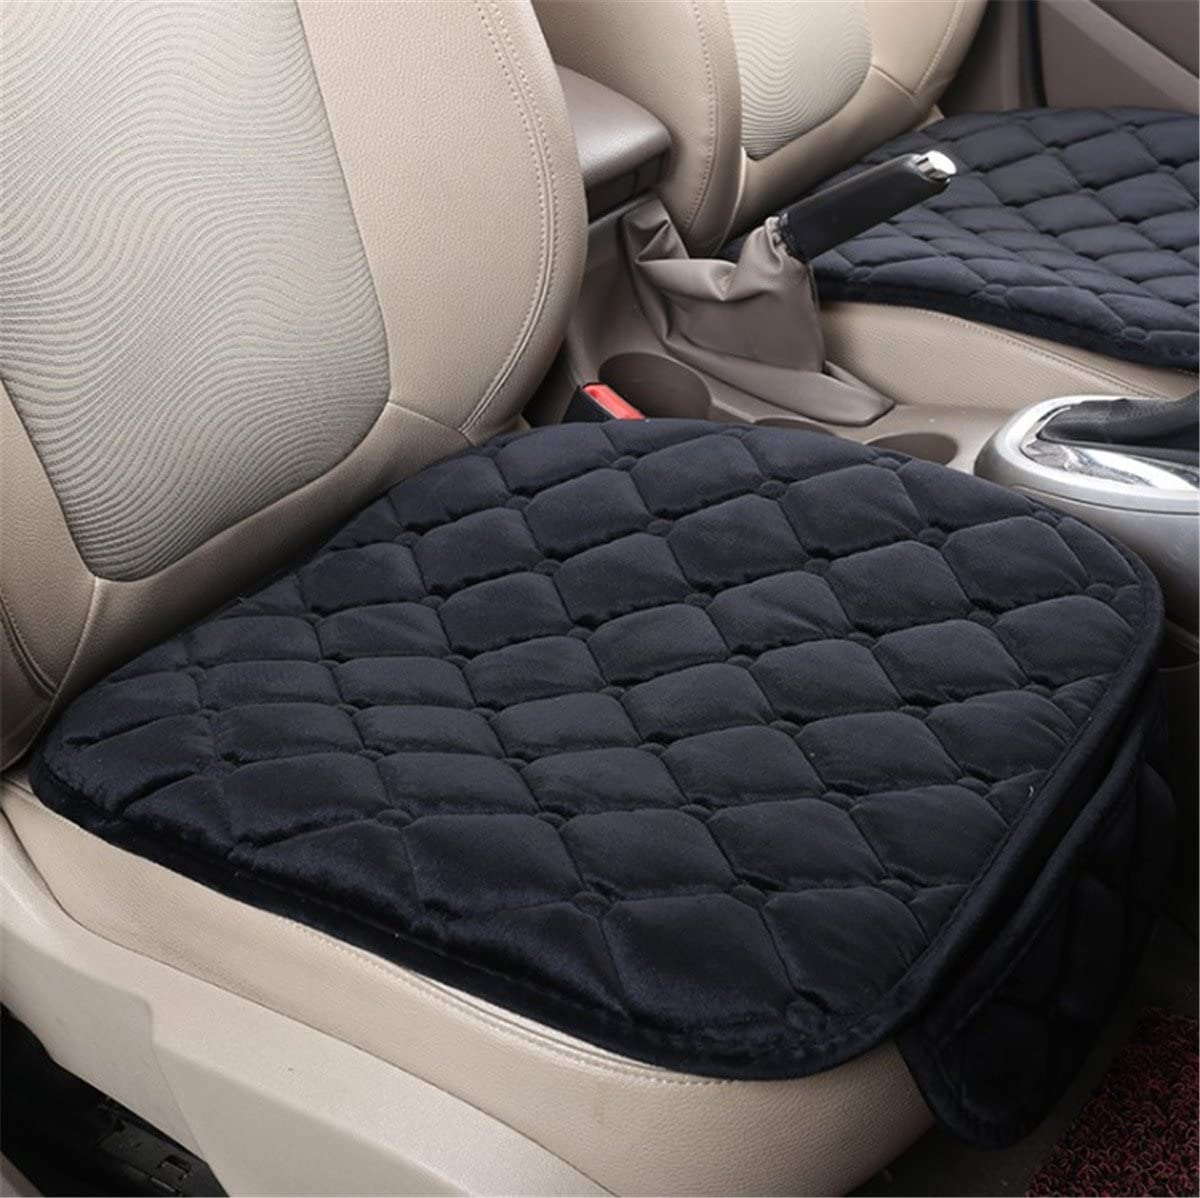 Fochutech Car Front Seat Cover Pad Mat Cushion Universal Fit Breathable Blanket Nonslip Auto Truck Office Plush Rhombus (Black)